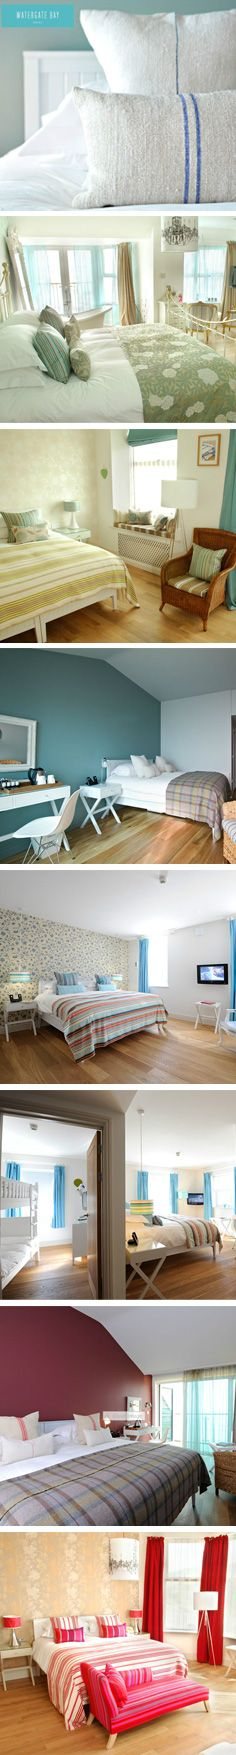 Rooms at Watergate Bay Hotel, Newquay.